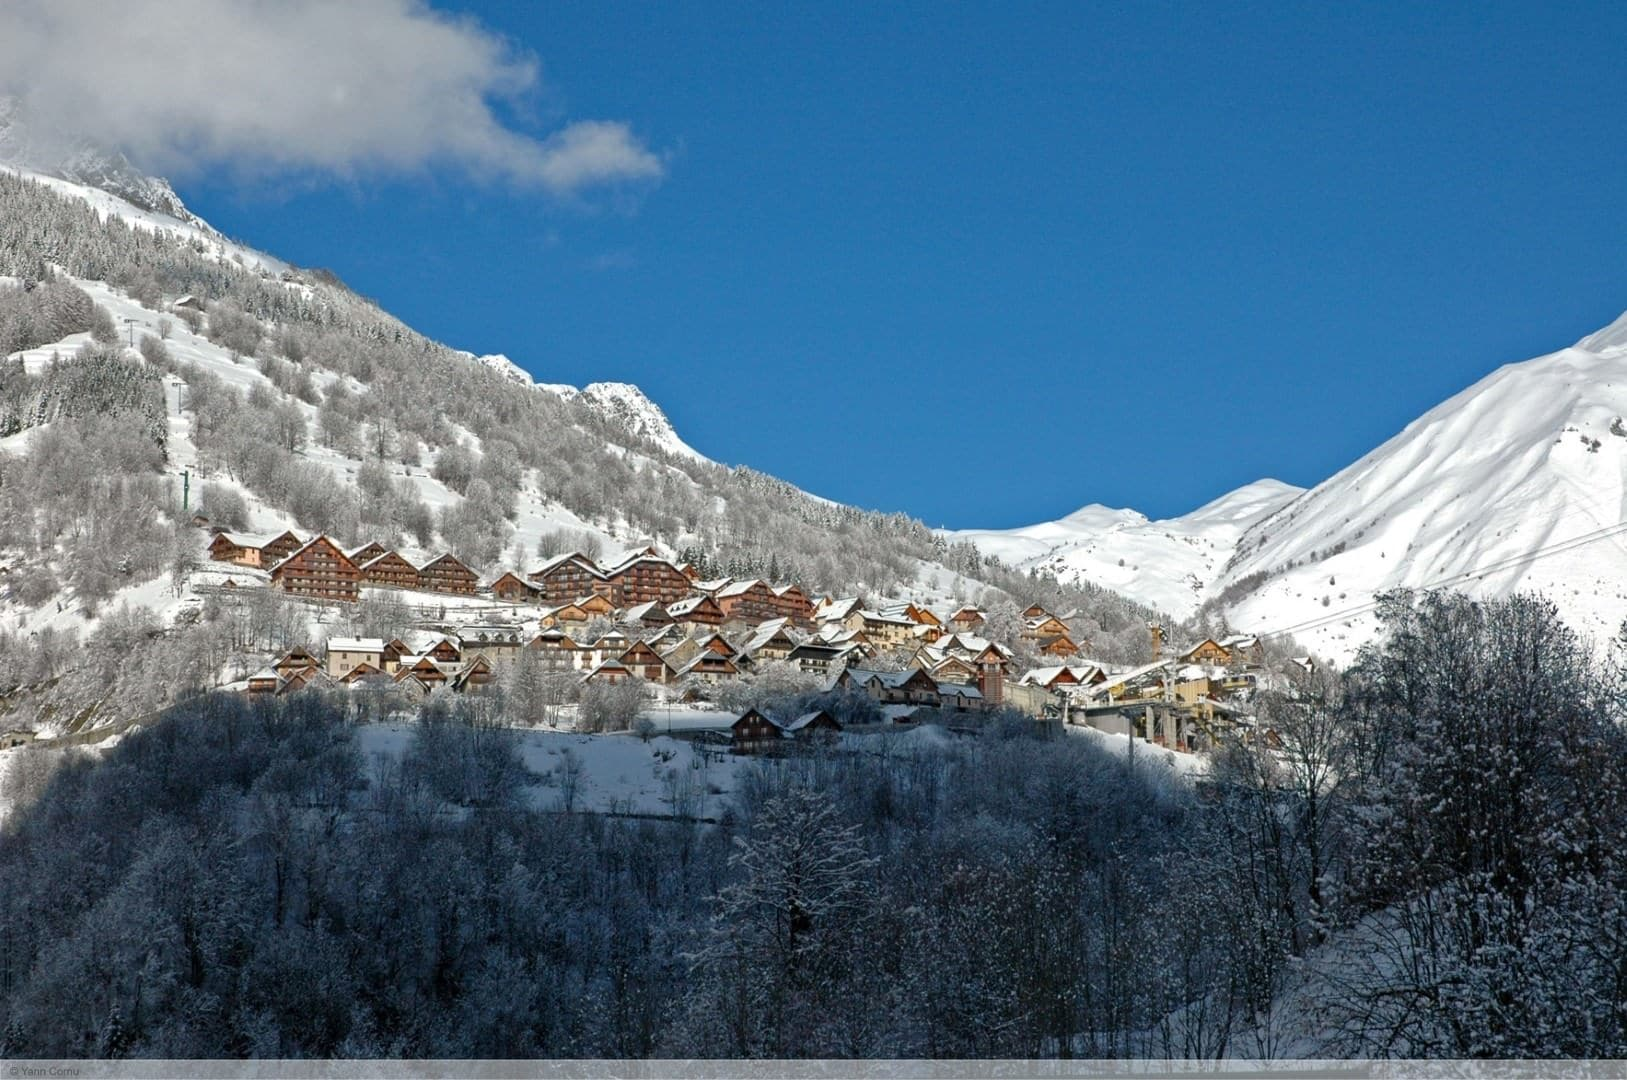 wintersport en aanbiedingen in Vaujany (Alpe d'Huez)